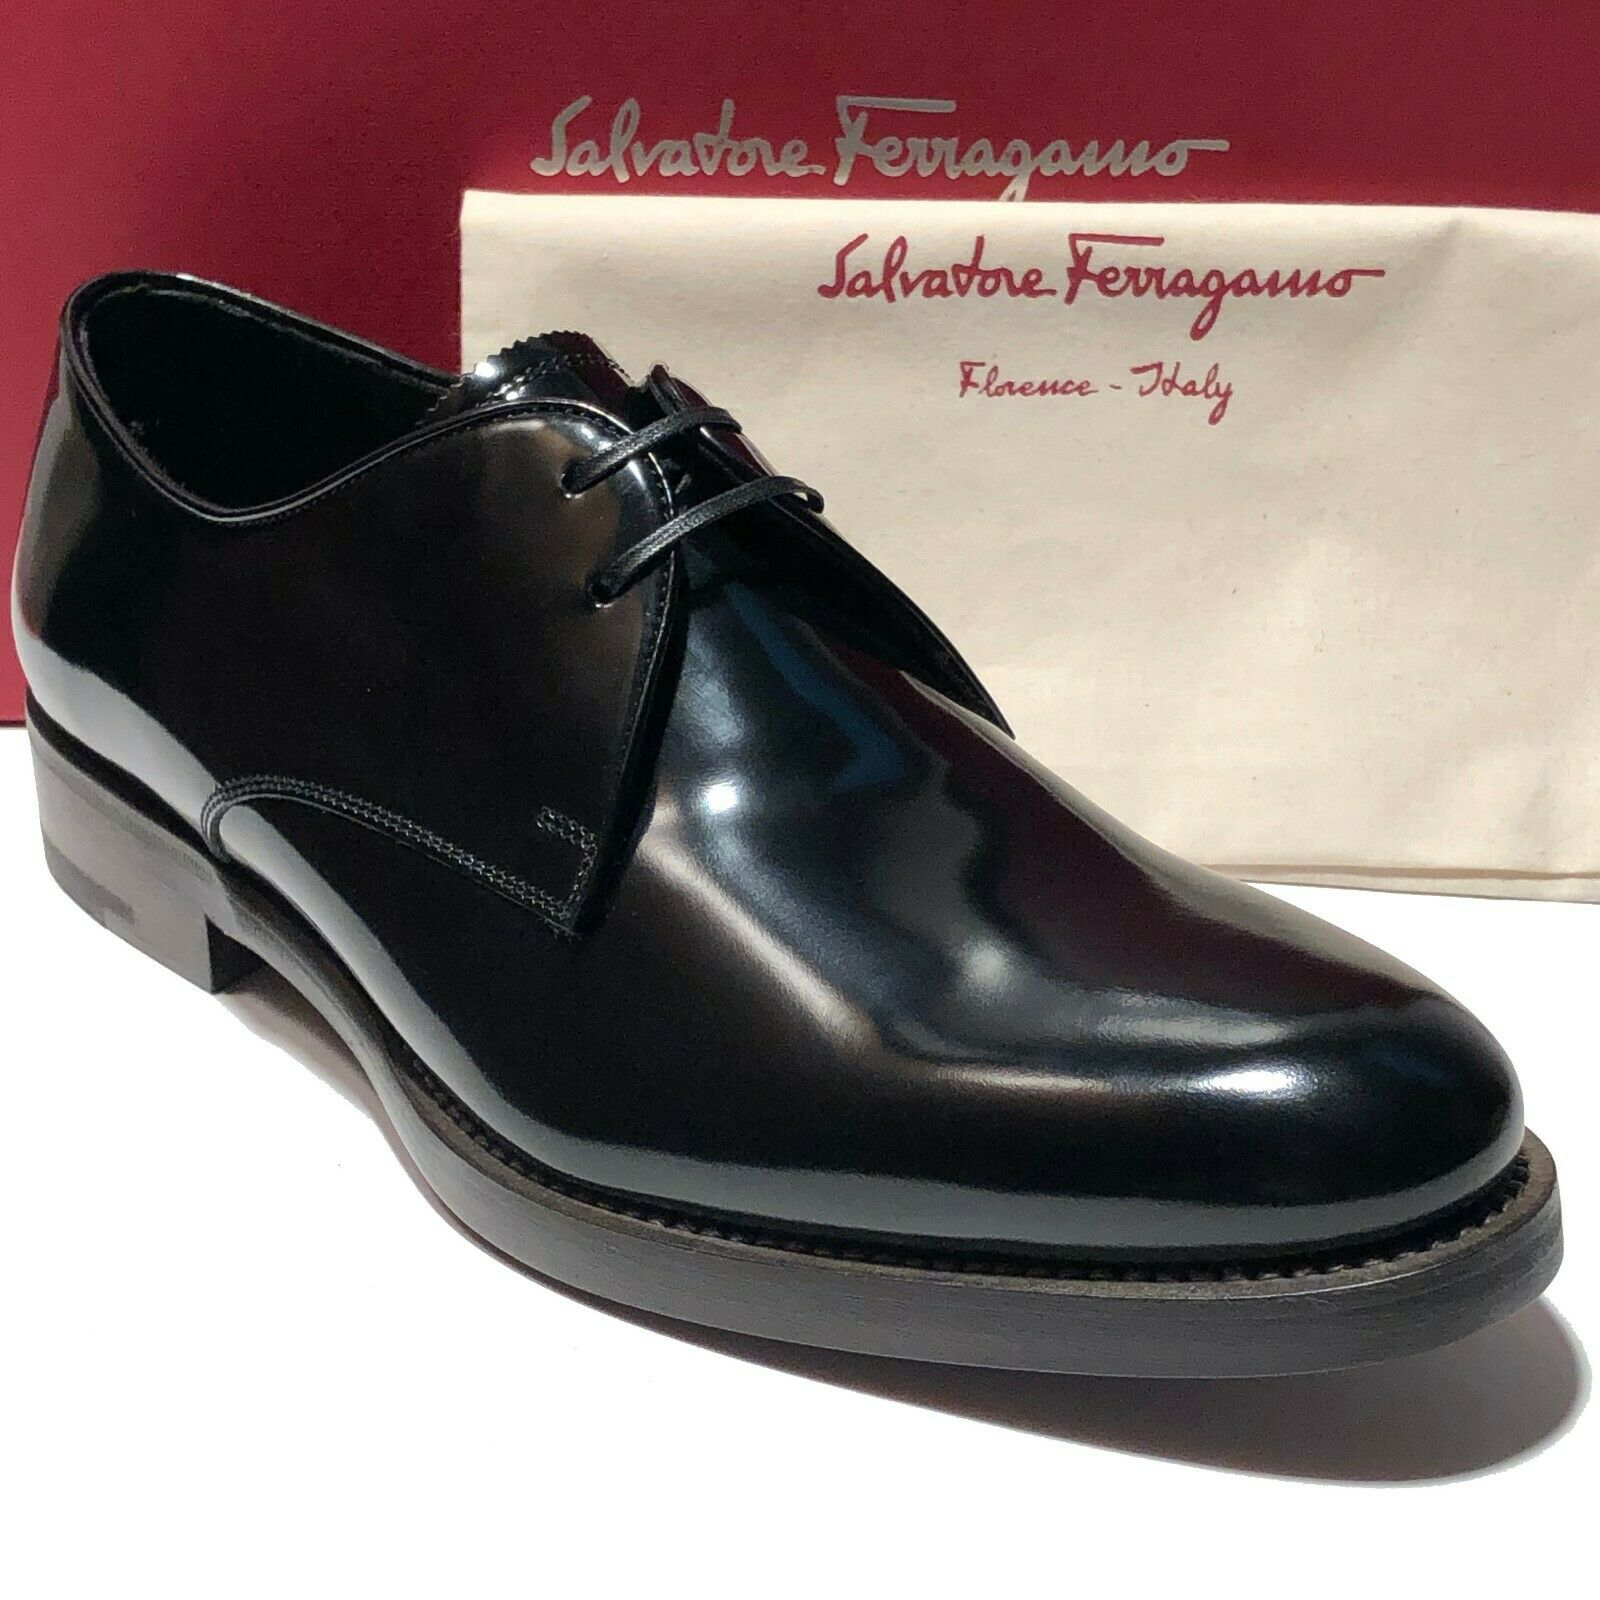 NEW Ferragamo Men's Semi-Patent Leather Black Dress Oxford Tuxedo Wedding Formal